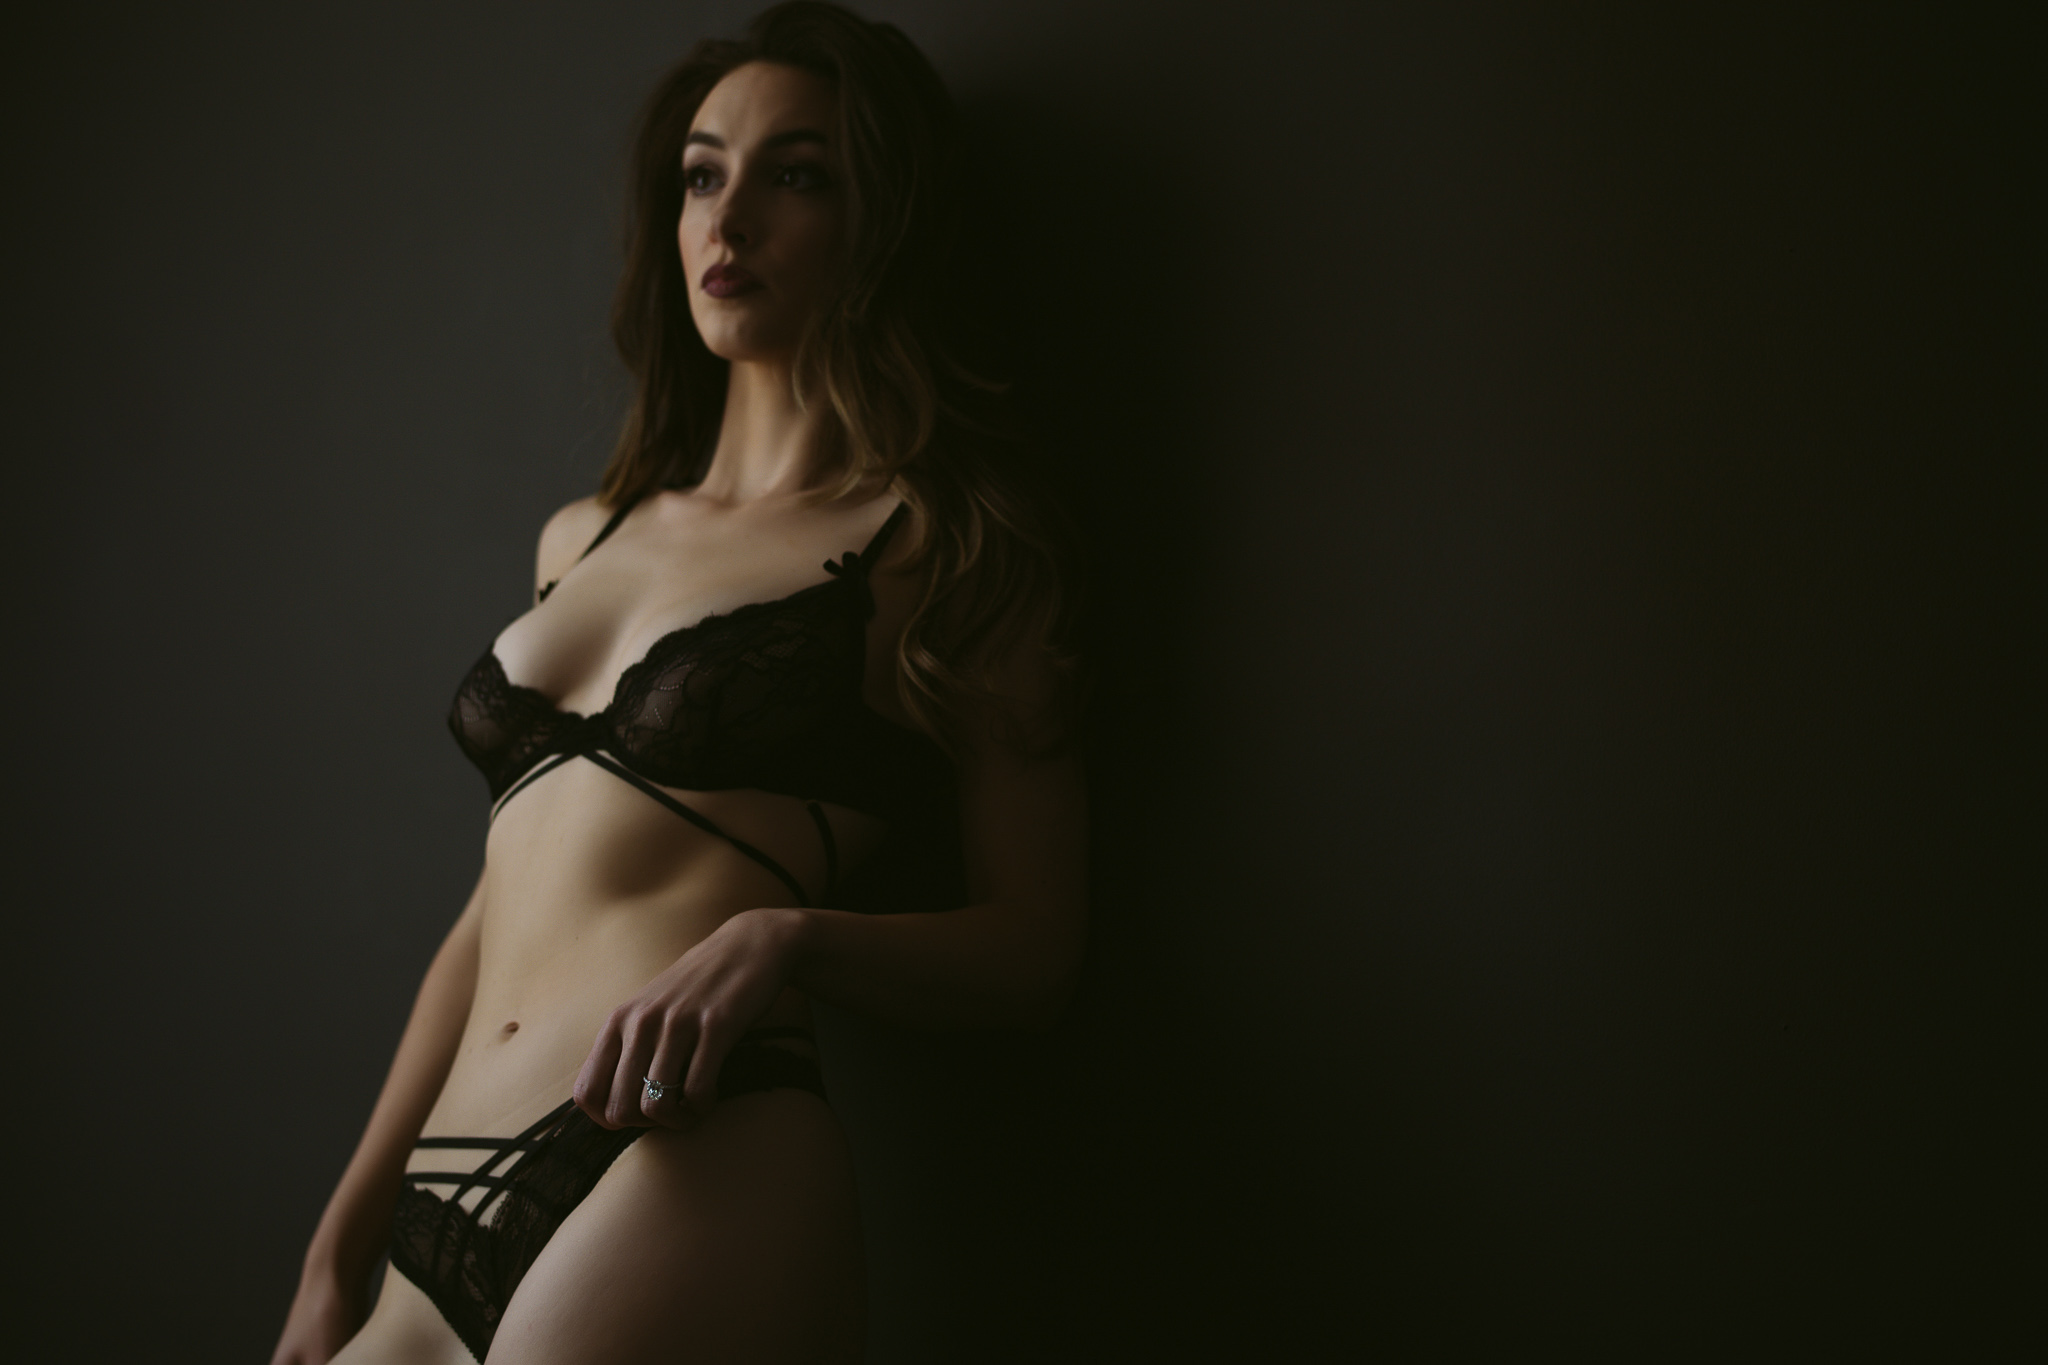 Get The Most Out of Your Boudoir Experience!